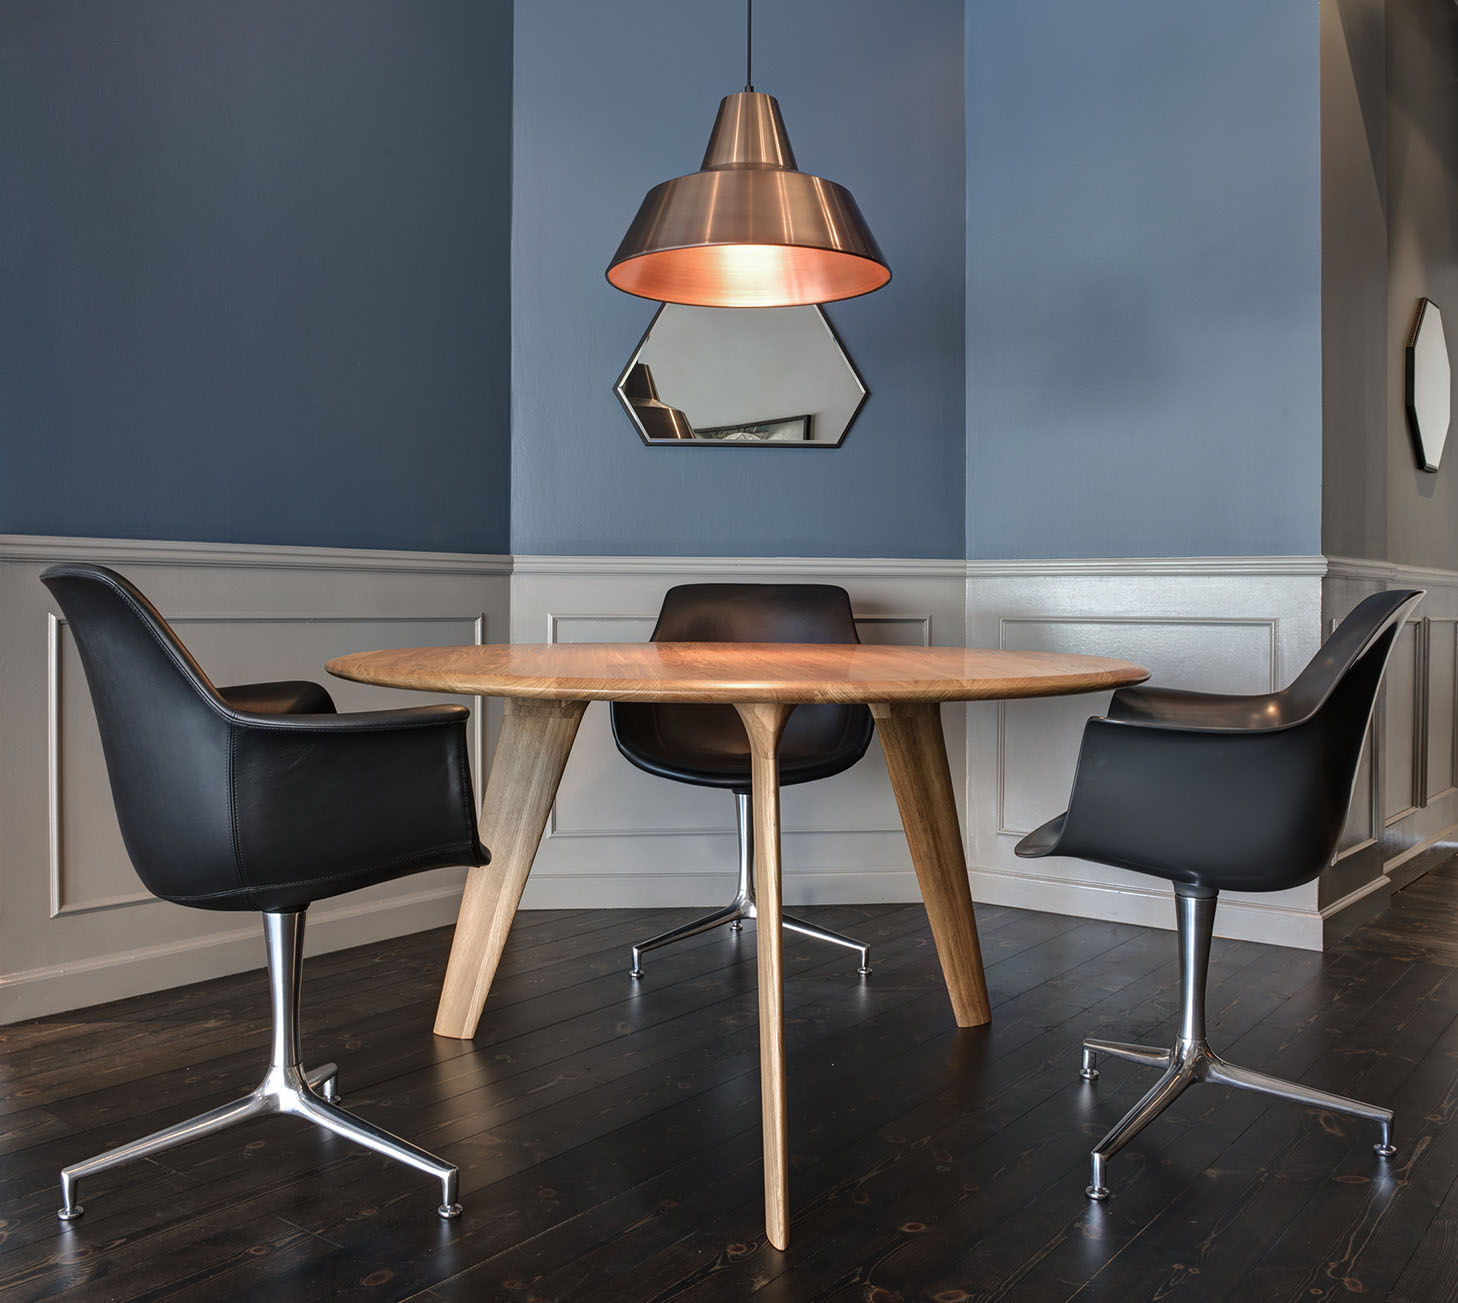 Wing Dining Table - 3 Leg